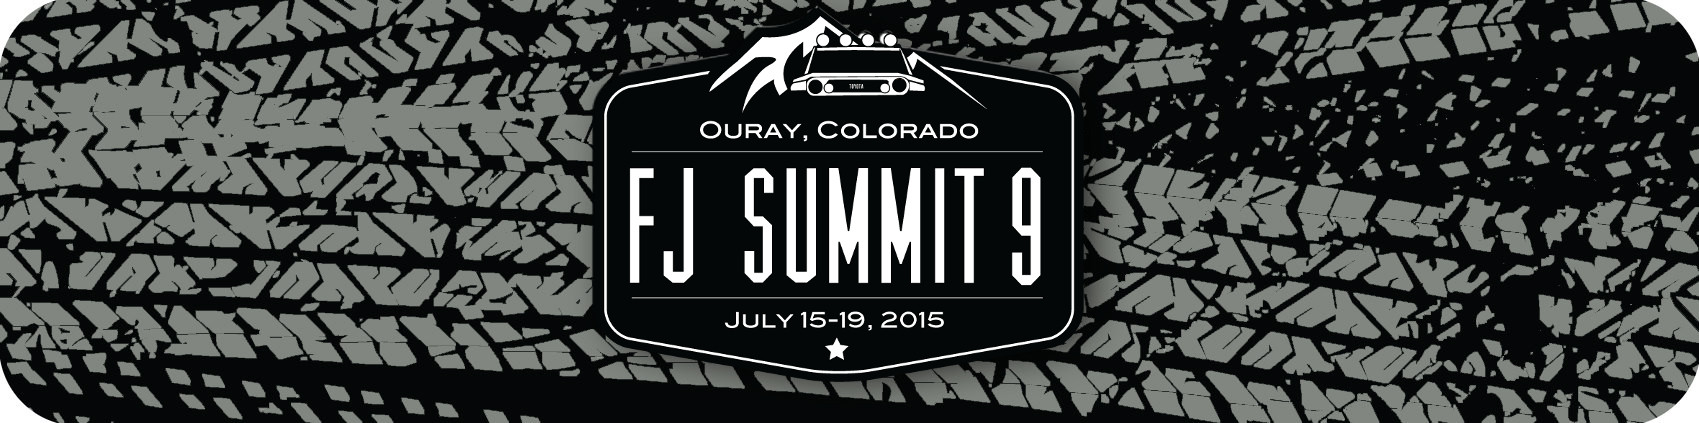 FJ Summit #9